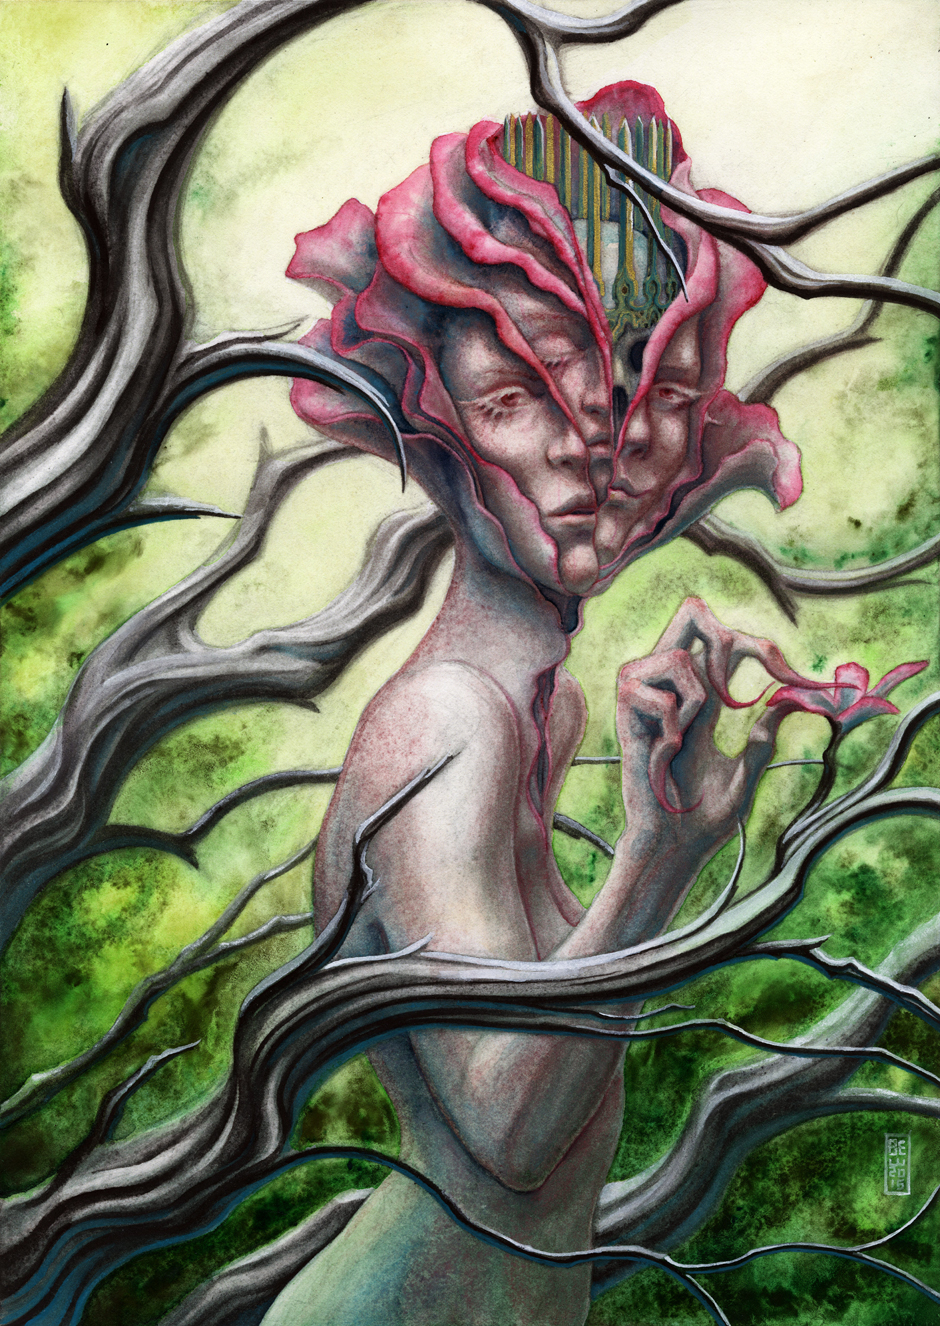 """DRYAD - 12x16""""watercolor + colored pencilpersonal work2016"""